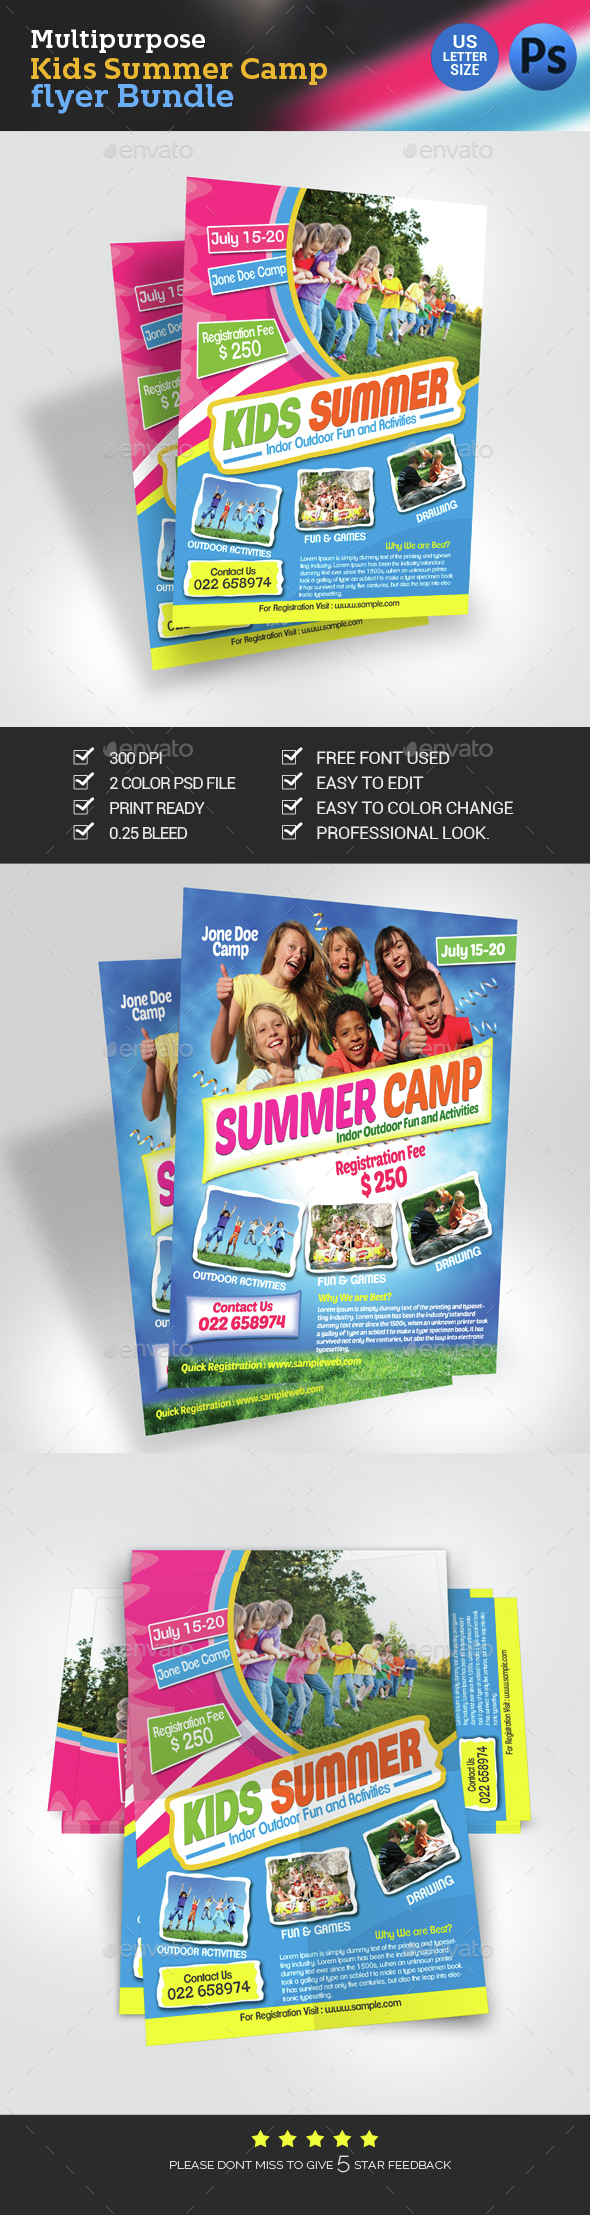 Kids Summer Camp Stationery And Design Templates